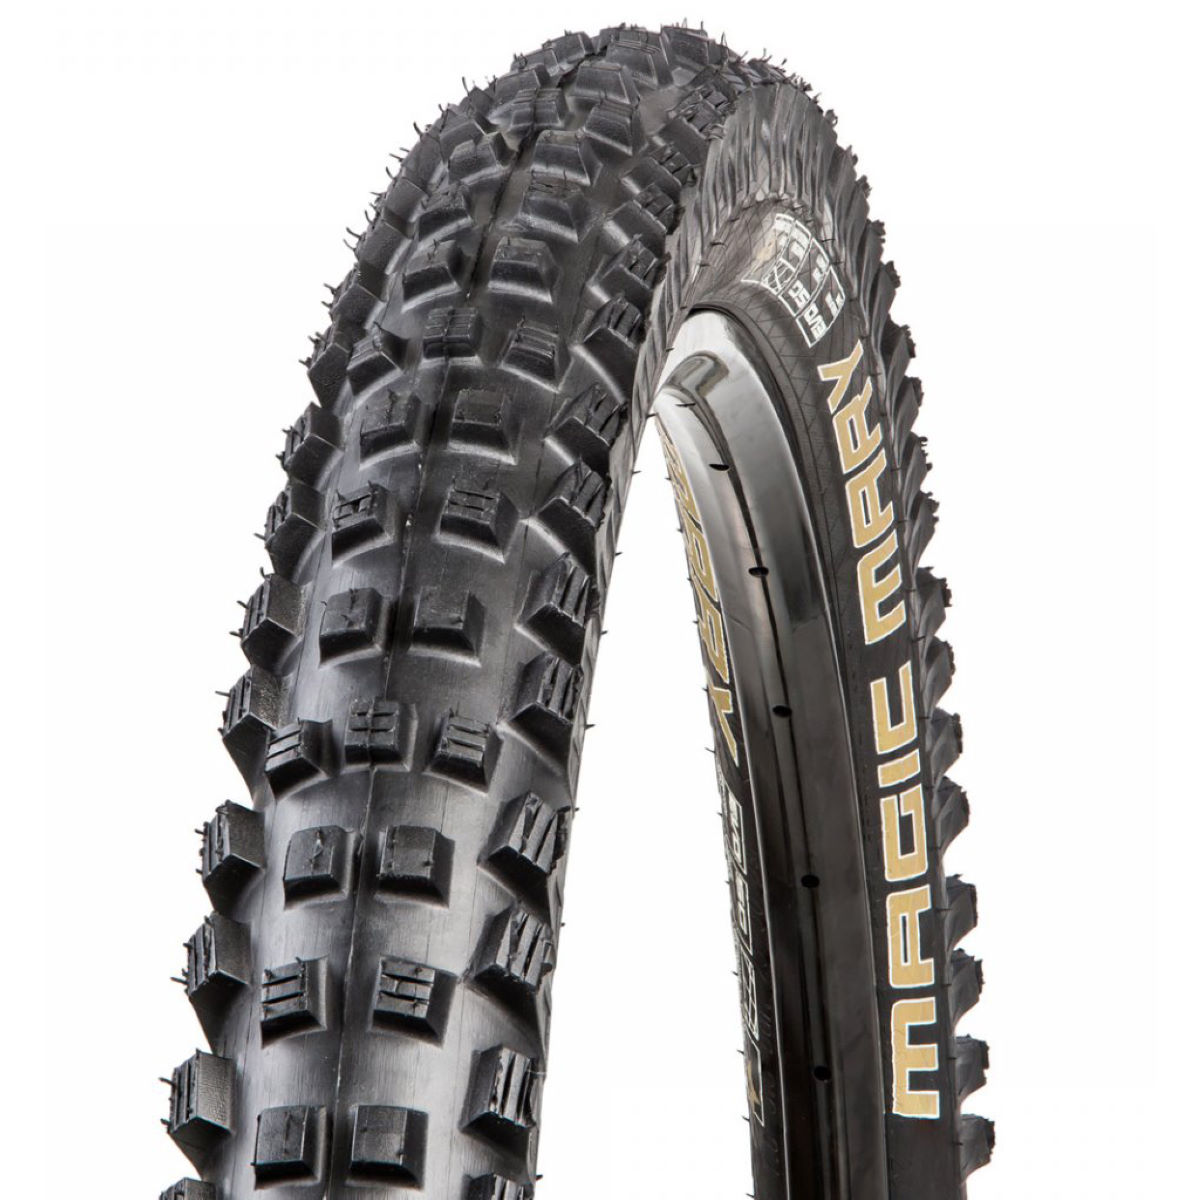 Pneu VTT Schwalbe Magic Mary Evo Super Gravity - 26' 2.35' Folding Be